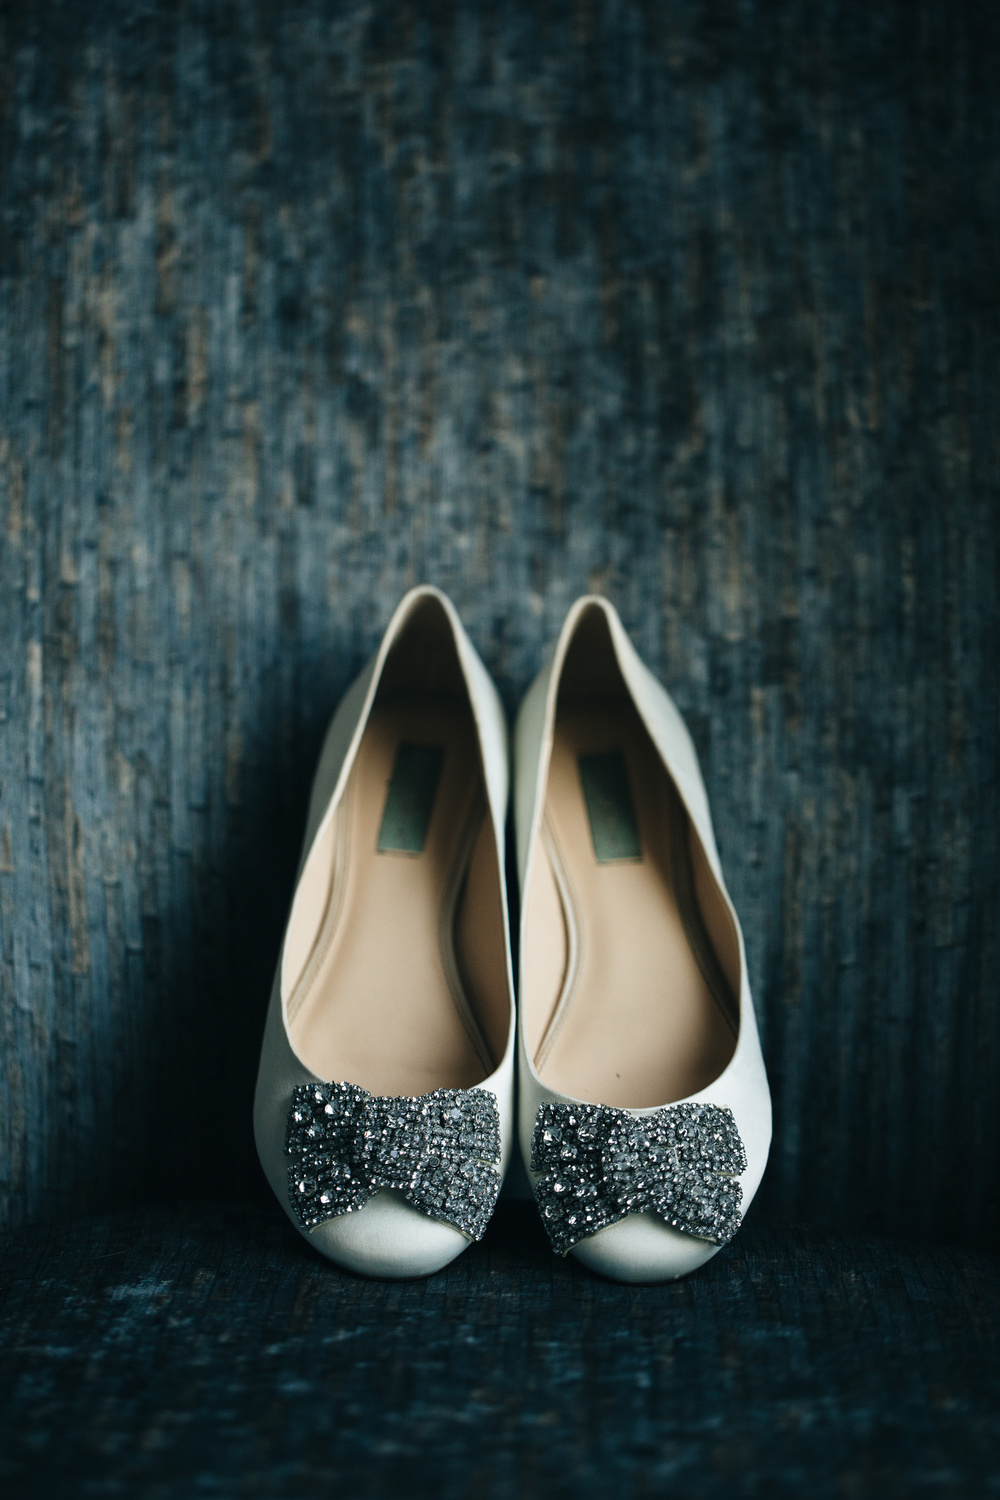 Beautiful bridal shoes on wedding day.